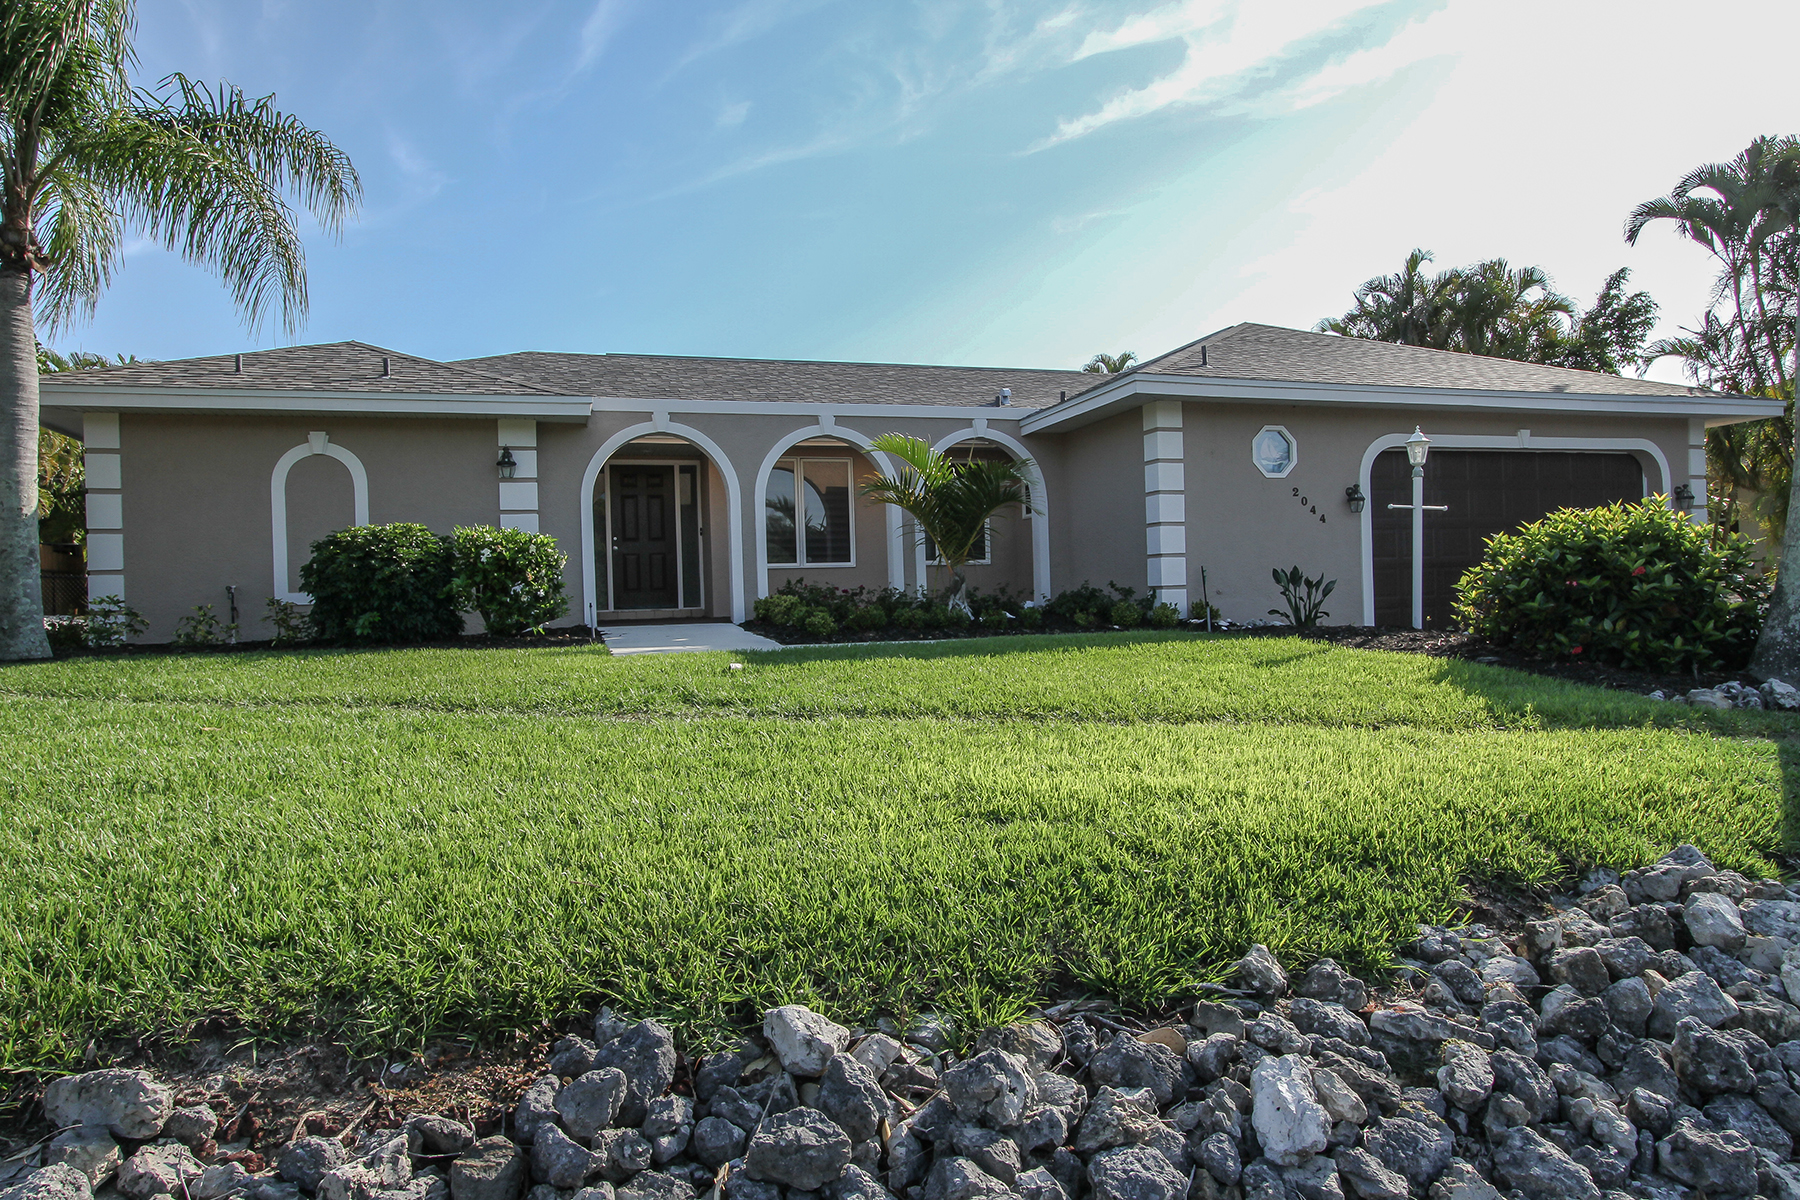 Single Family Home for Rent at MARCO BEACH 2044 Sheffield Ave Marco Island, Florida 34145 United States